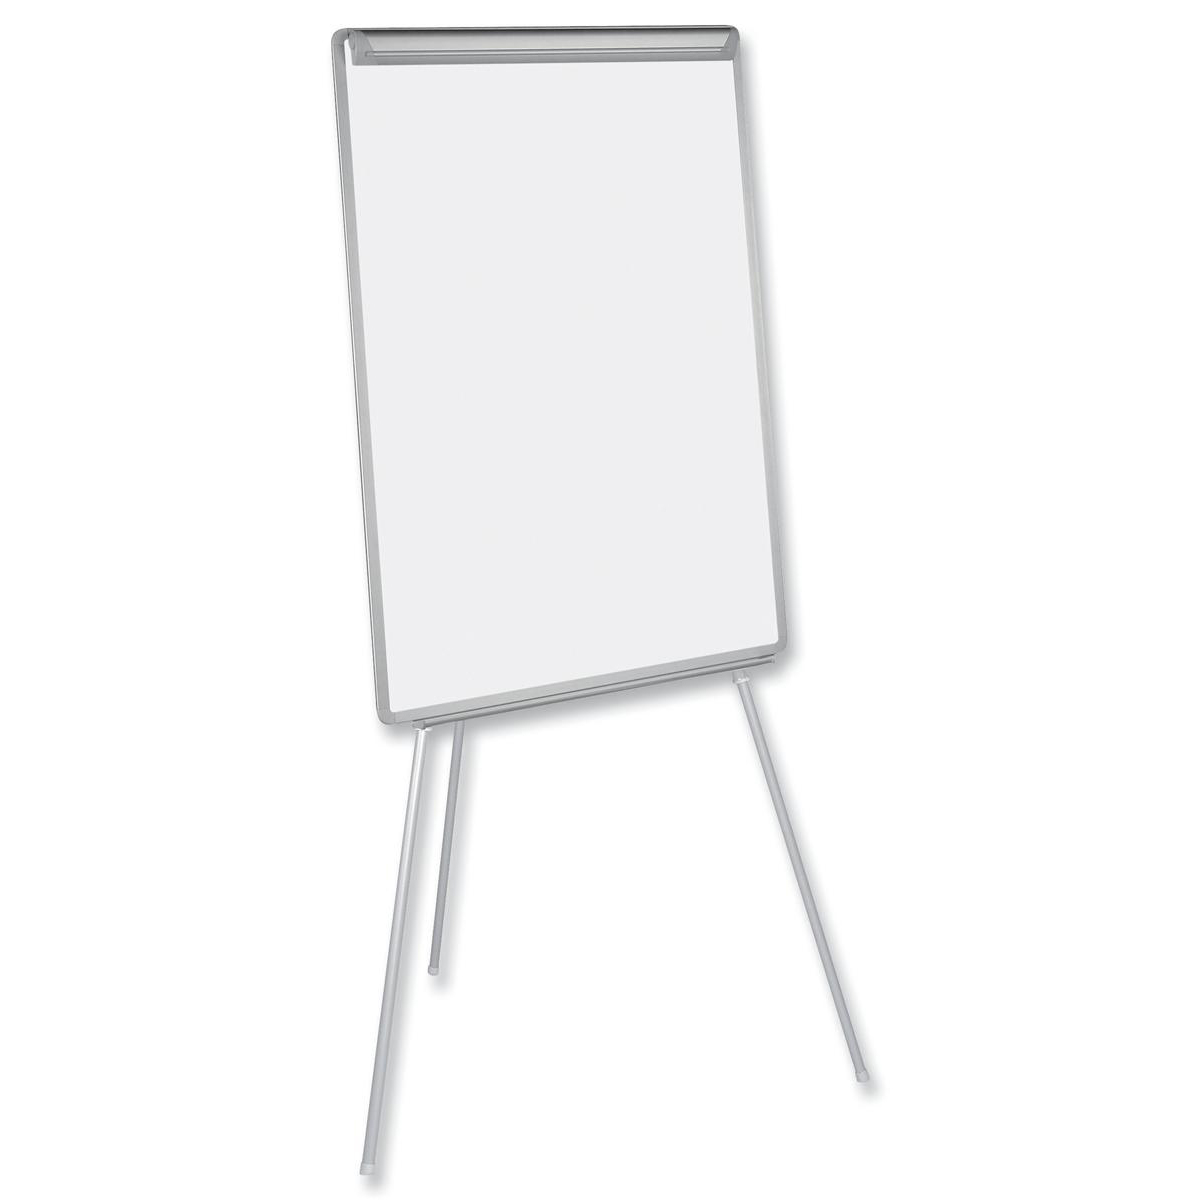 Business Office Flipchart Easel with W670xH990mm Board W700xD82xH1900mm